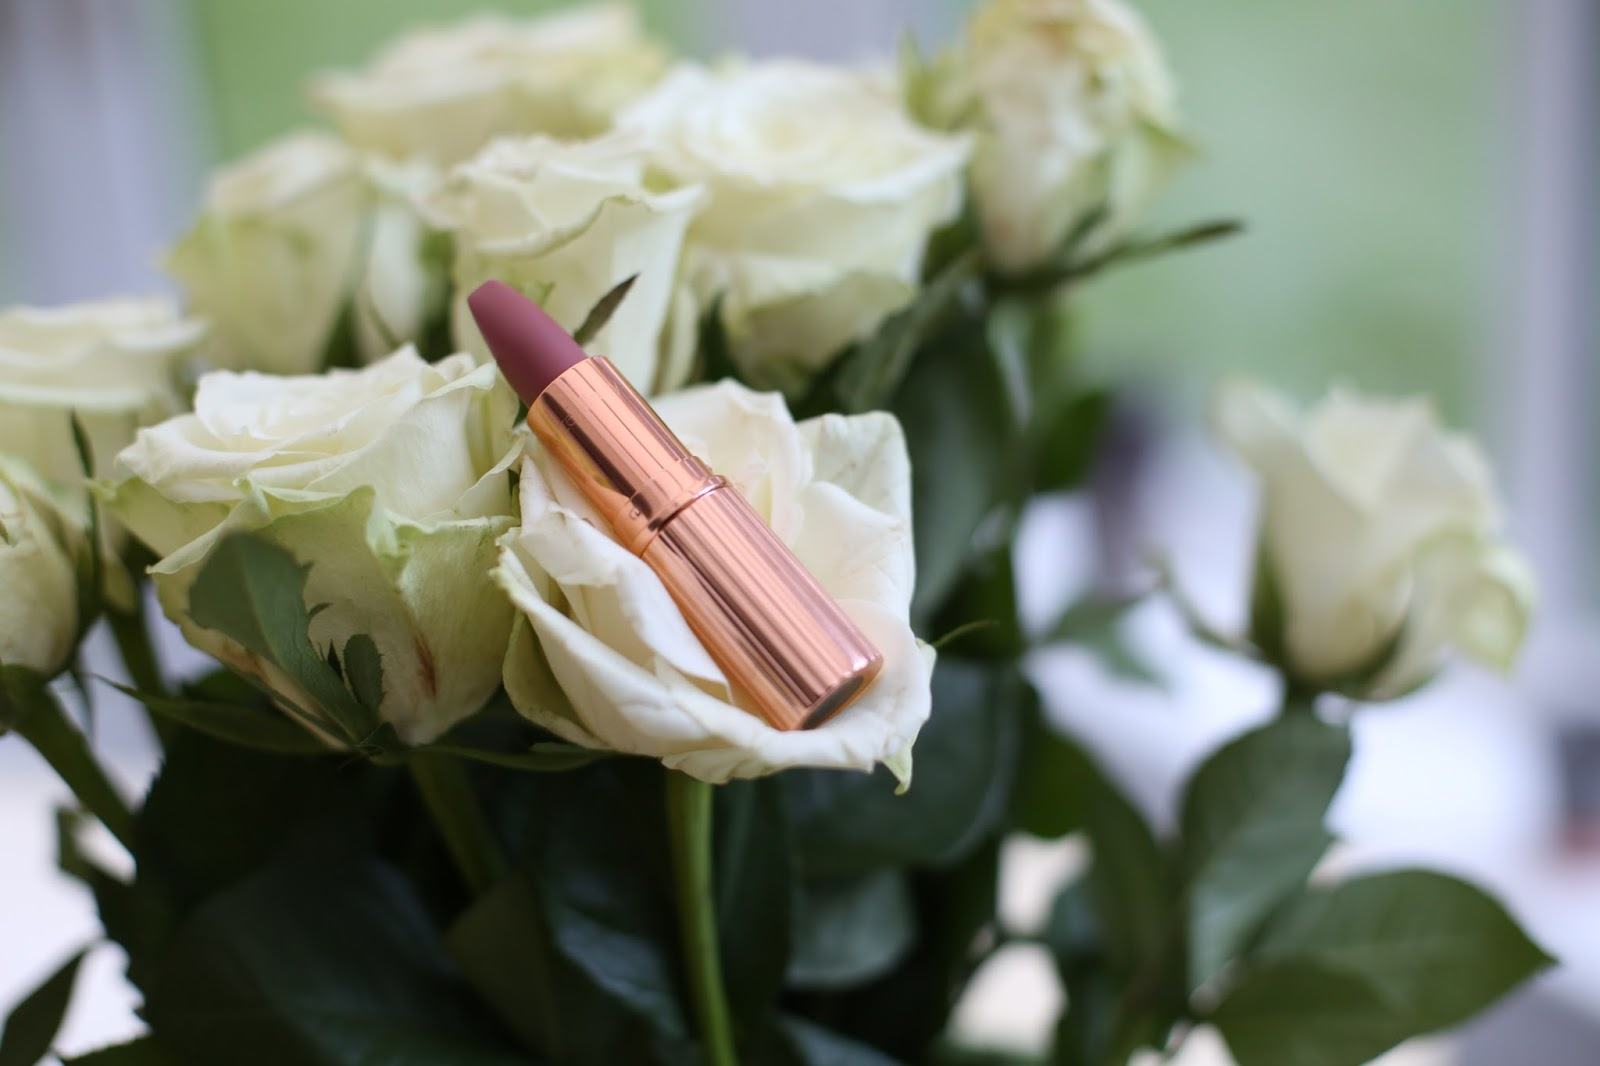 pillowtalk lipstick Charlotte tilbury